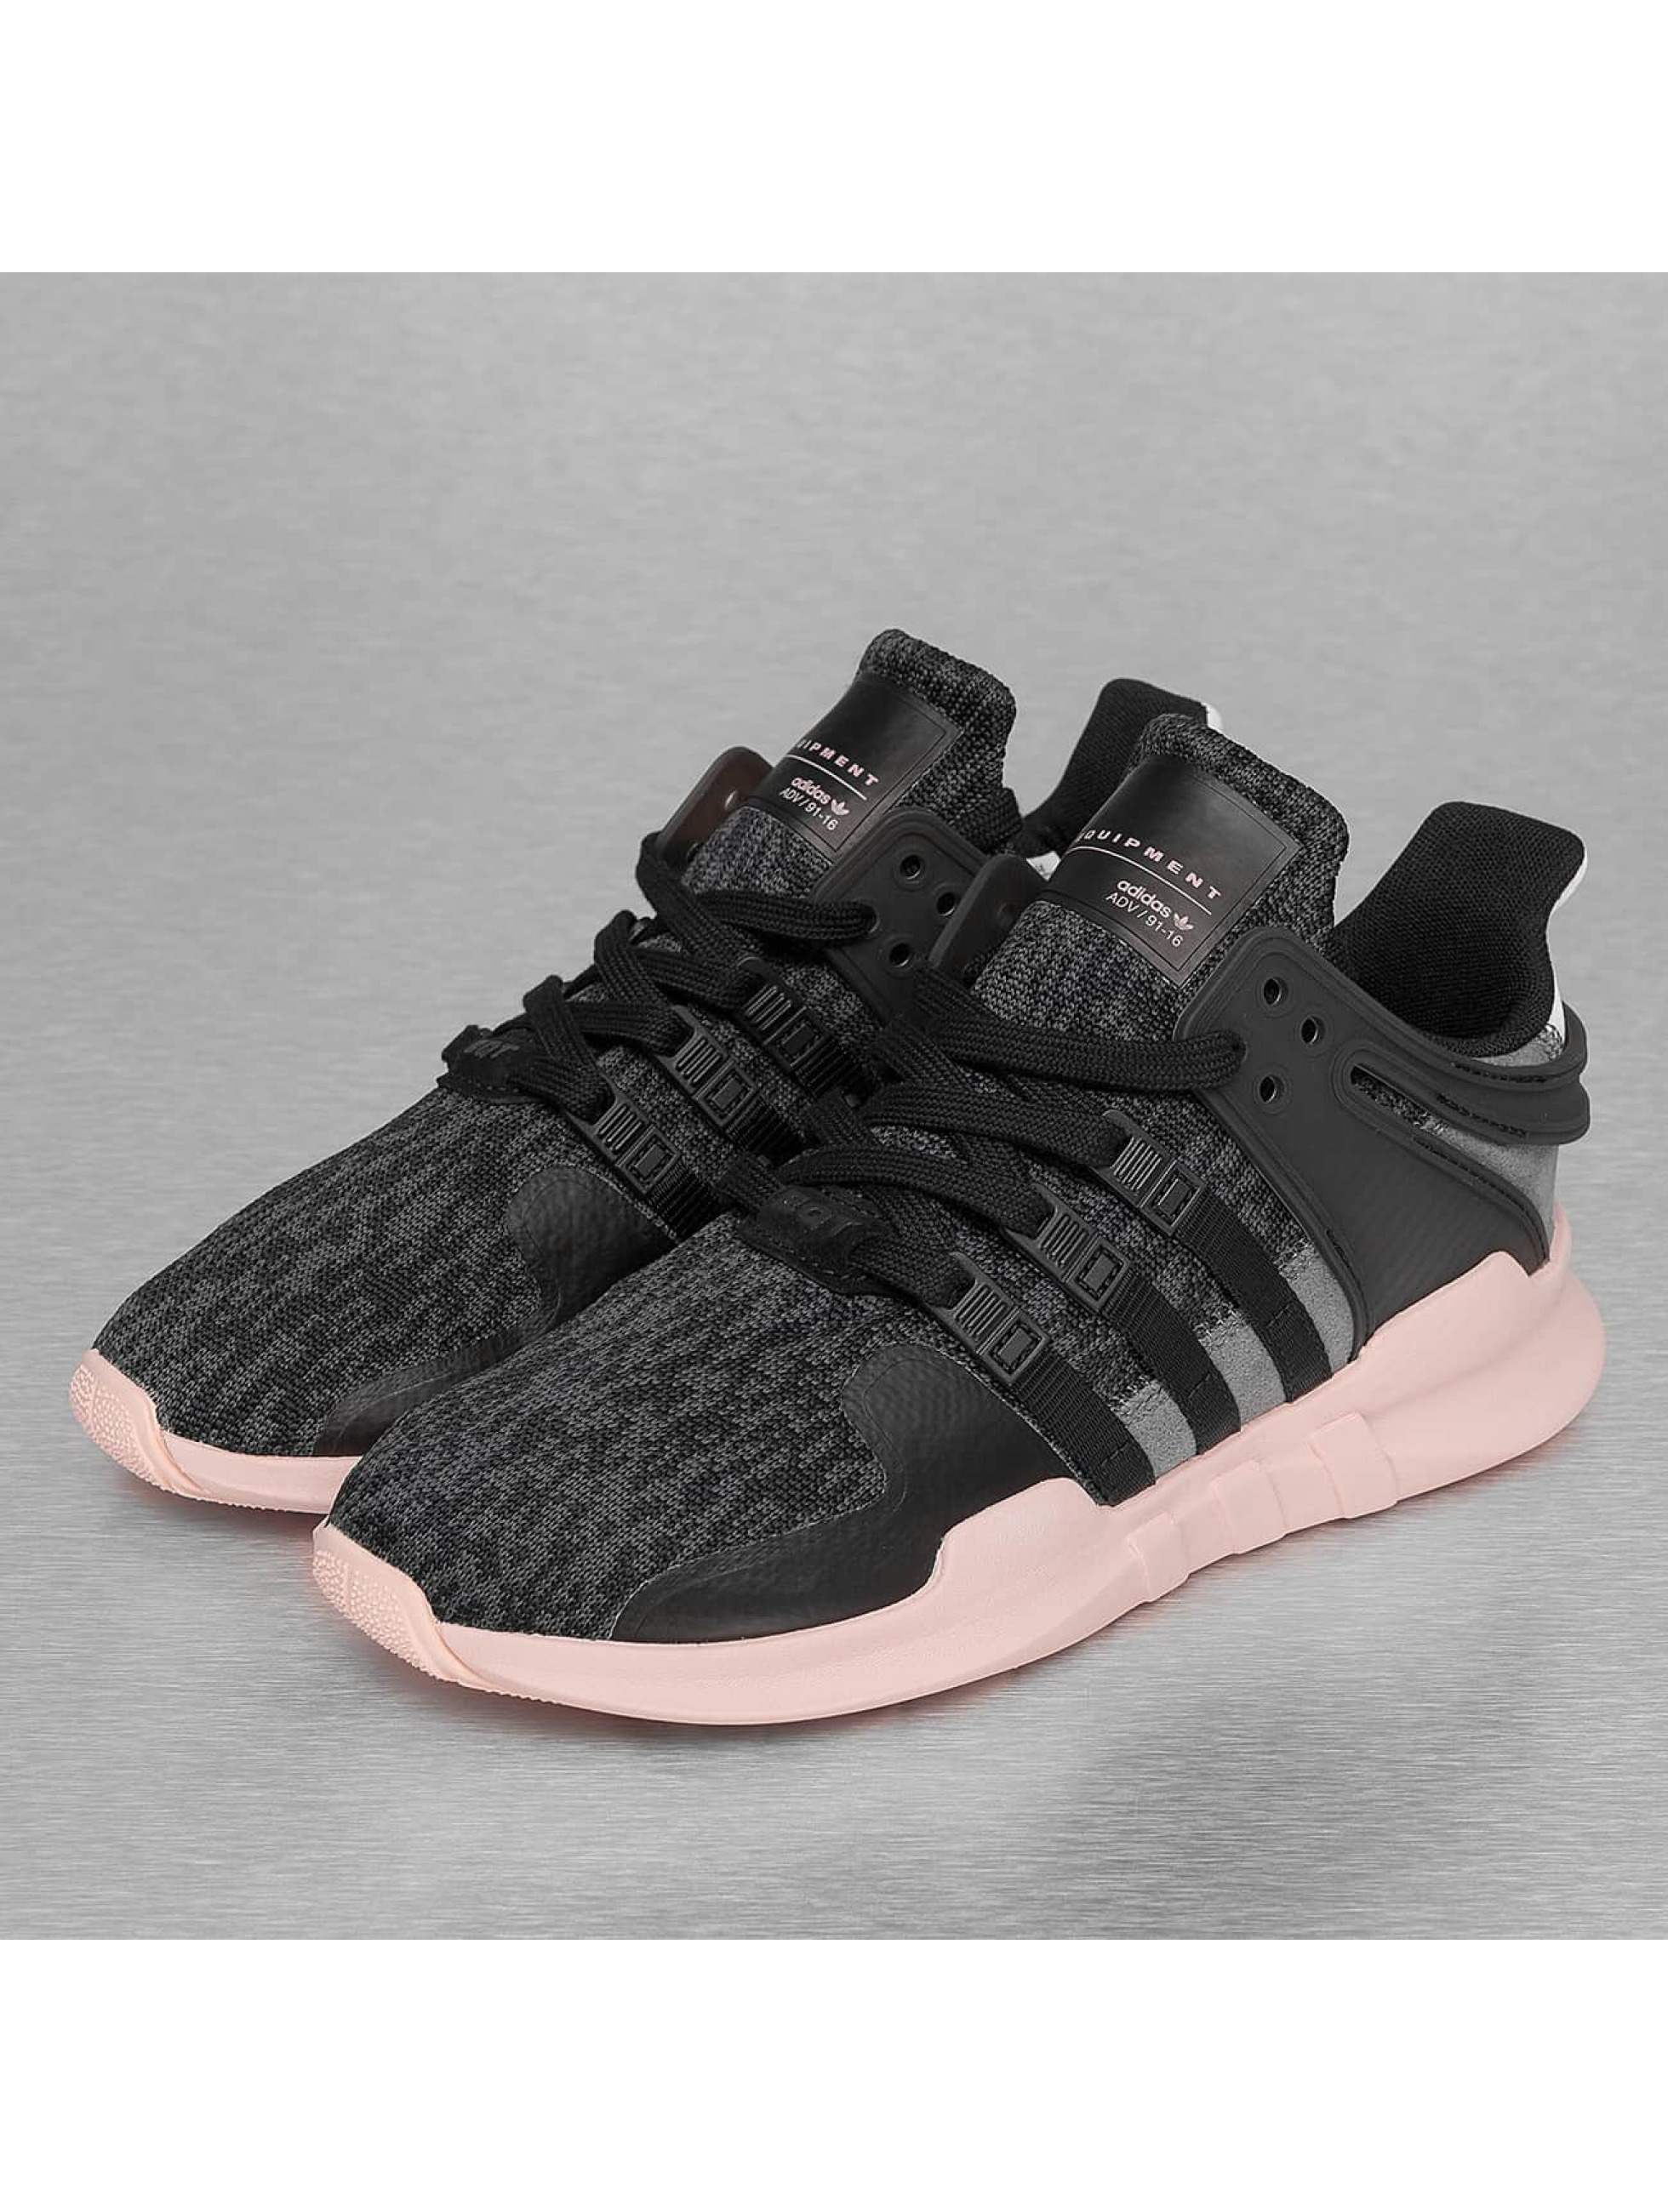 adidas Frauen Sneaker Equipment Support ADV W in schwarz